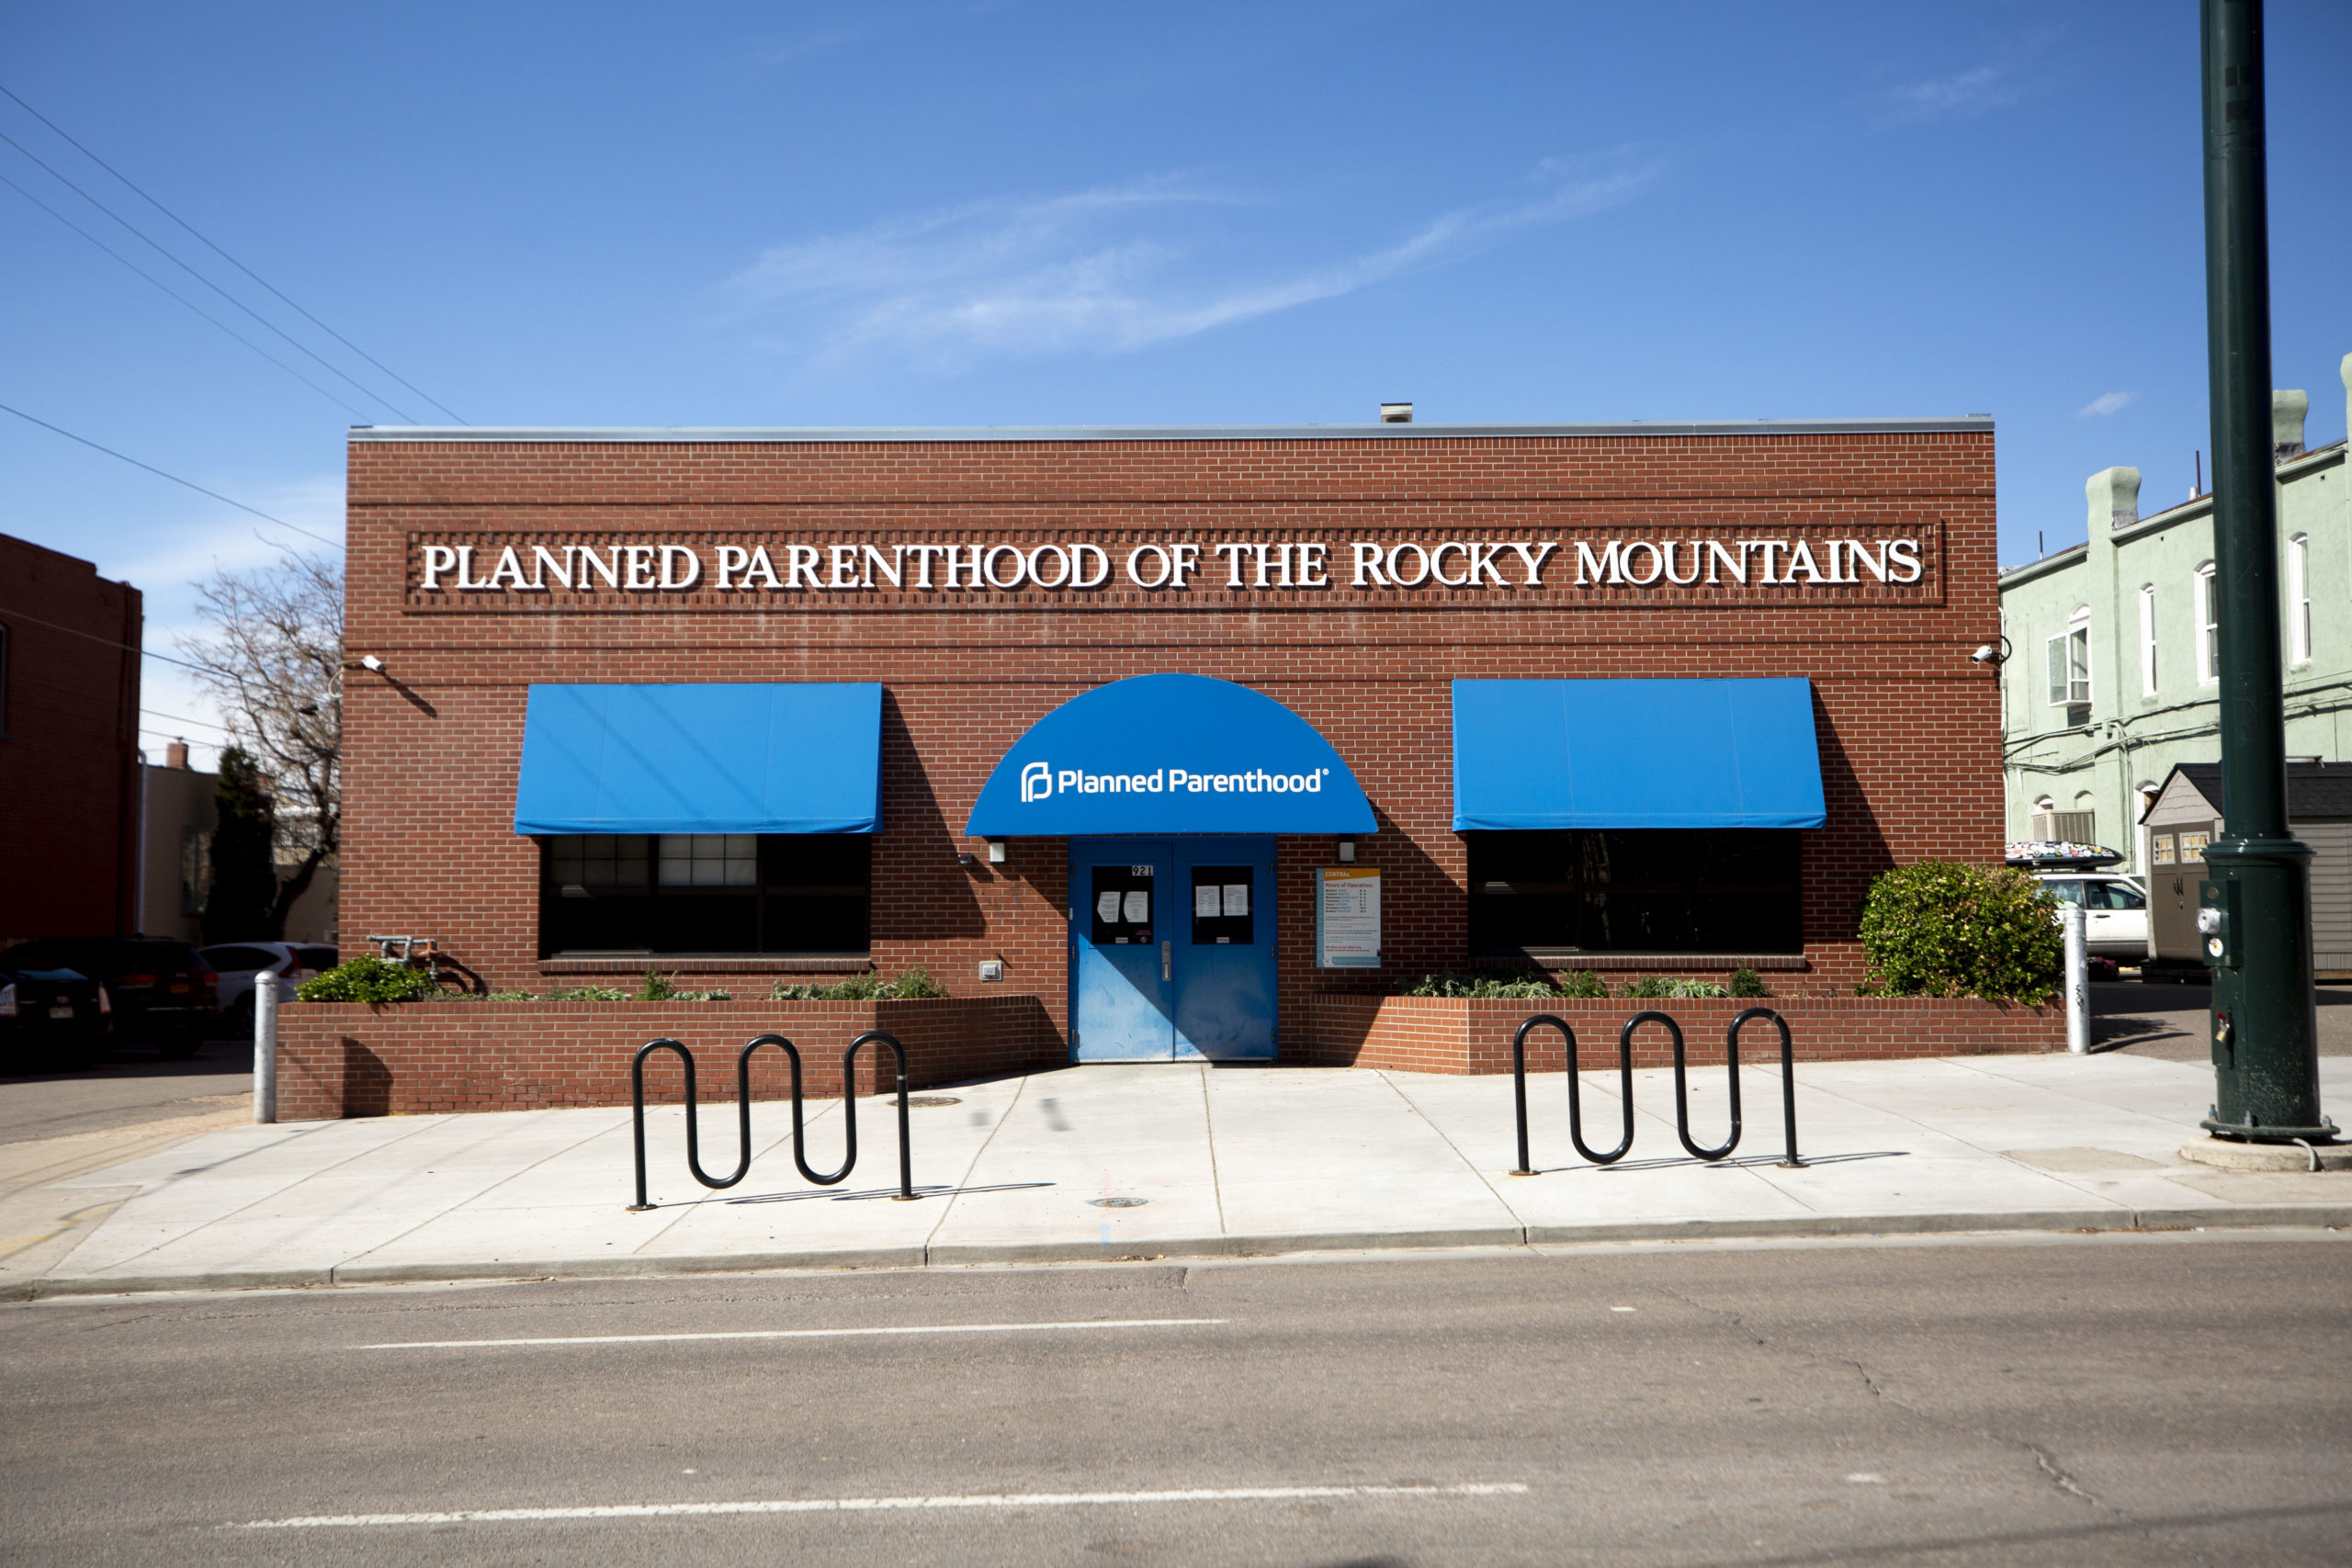 Planned Parenthood of the Rockies on 14th Avenue in Capitol Hill. April 14, 2020.